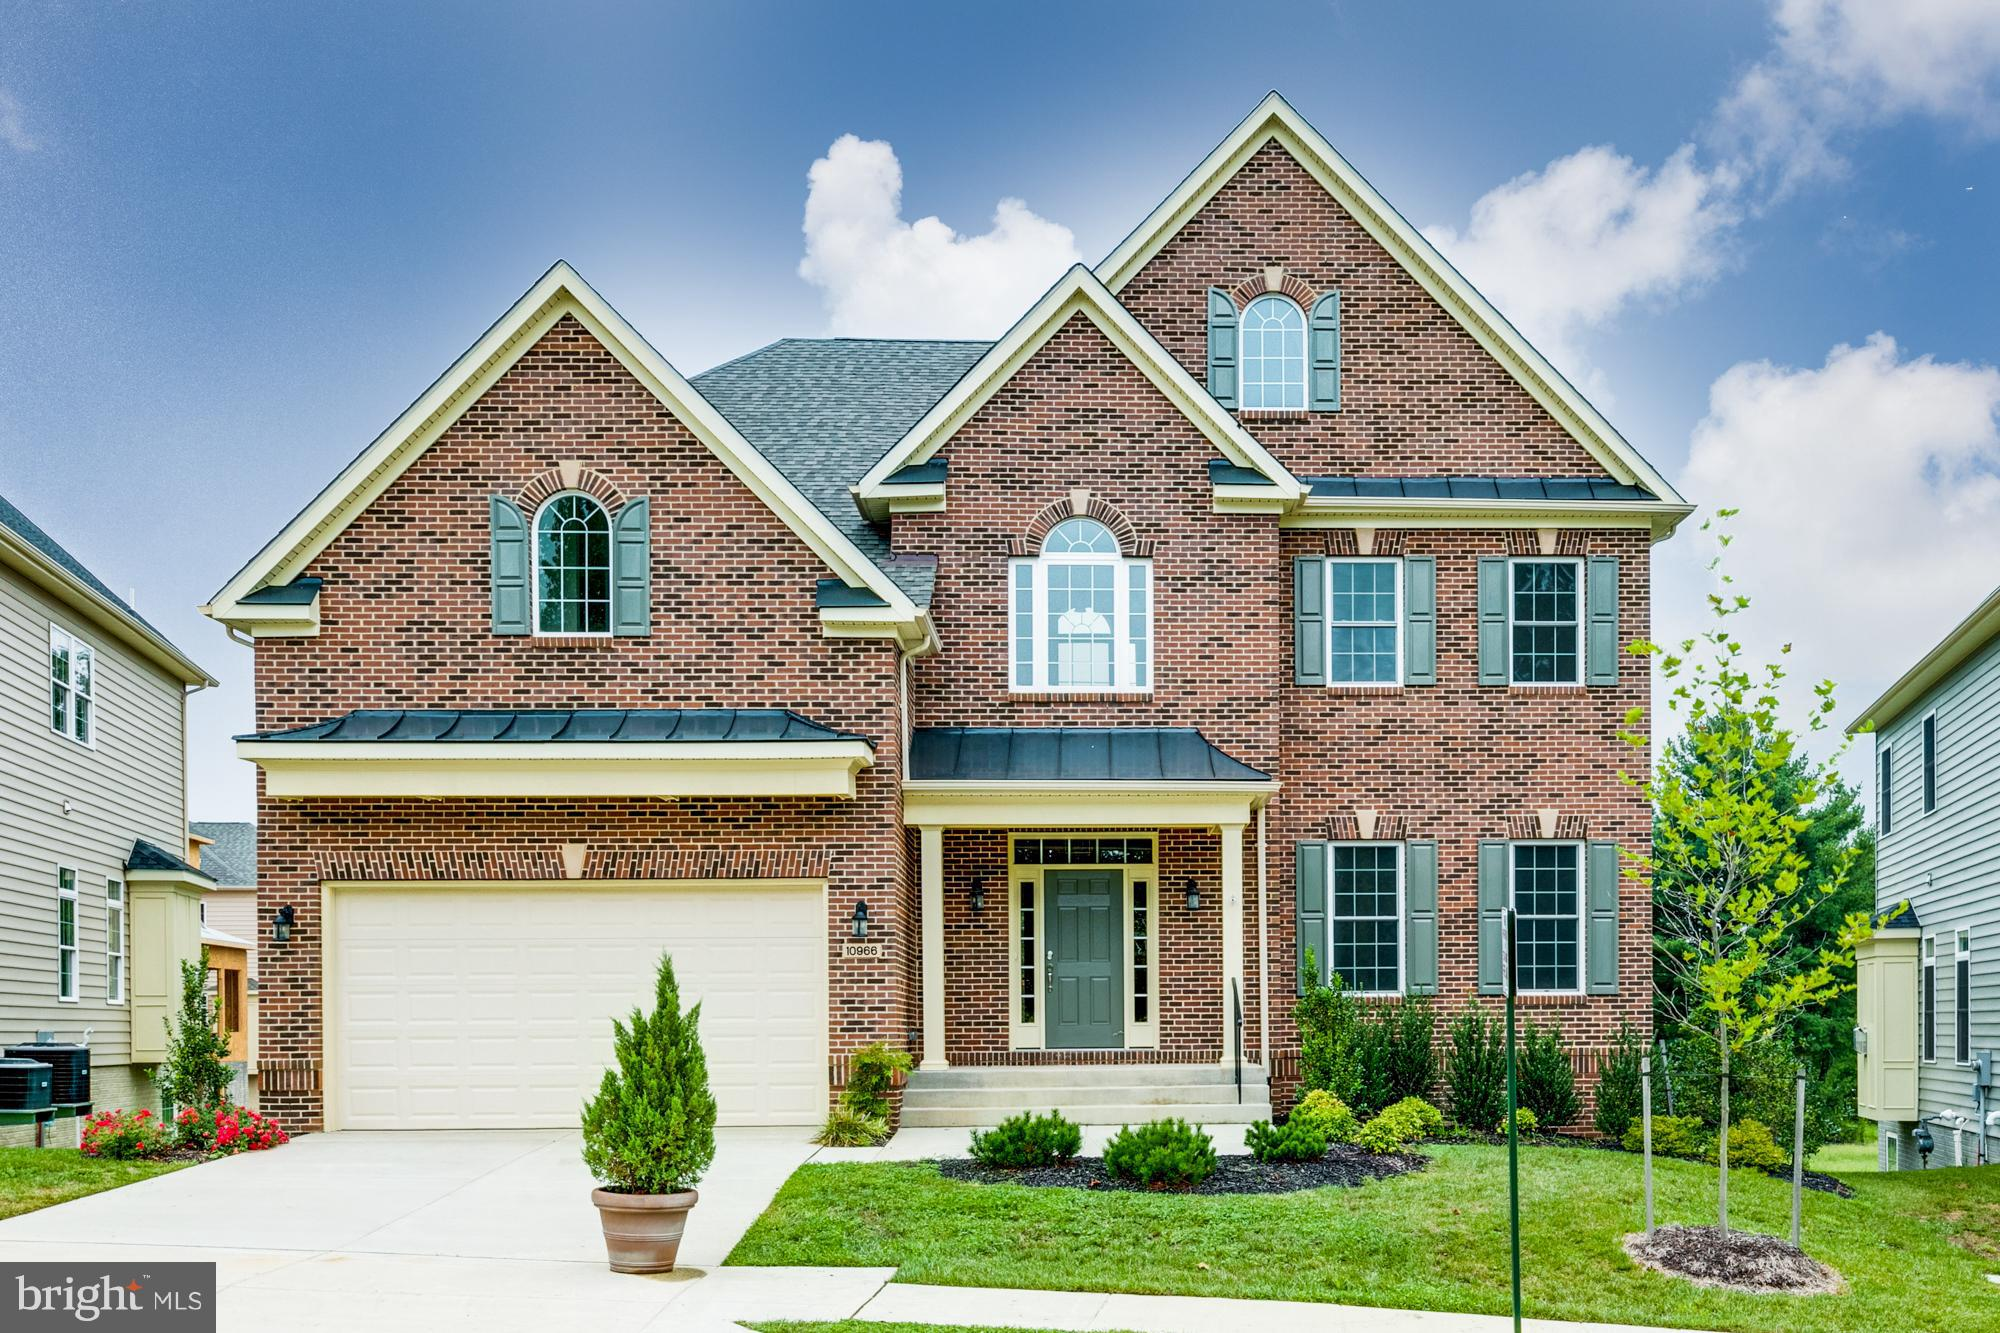 Welcome Home to this beautiful SFH in sought after Ox Road Estates!!! Home features 5 BD/4.5 BA 2 story foyer, gourmet kitchen, SS Appliances, formal DR, HRDWD floors, Granite counter-tops, crown molding, 2 car garage, spacious rec.room,custom paint colors, den,large island, laundry on bedroom level. Builder is offering $10K credit towards options. Act now!!